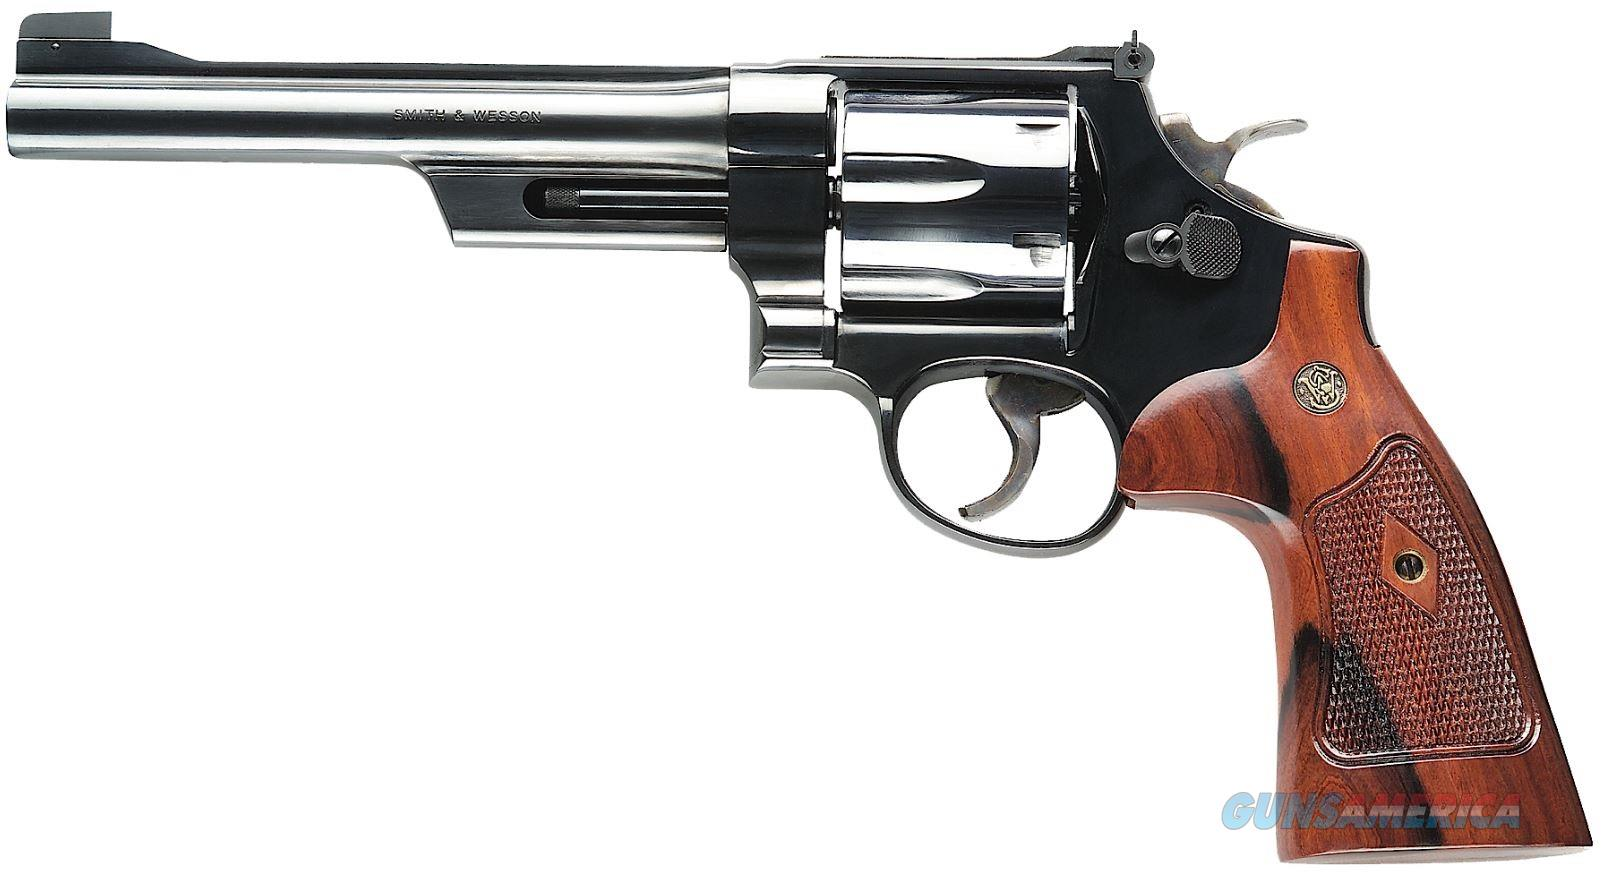 "Smith & Wesson 25 Classic 45 Colt (LC) 6.5"" 6 Shot - New in Box  Guns > Pistols > Smith & Wesson Revolvers > Full Frame Revolver"